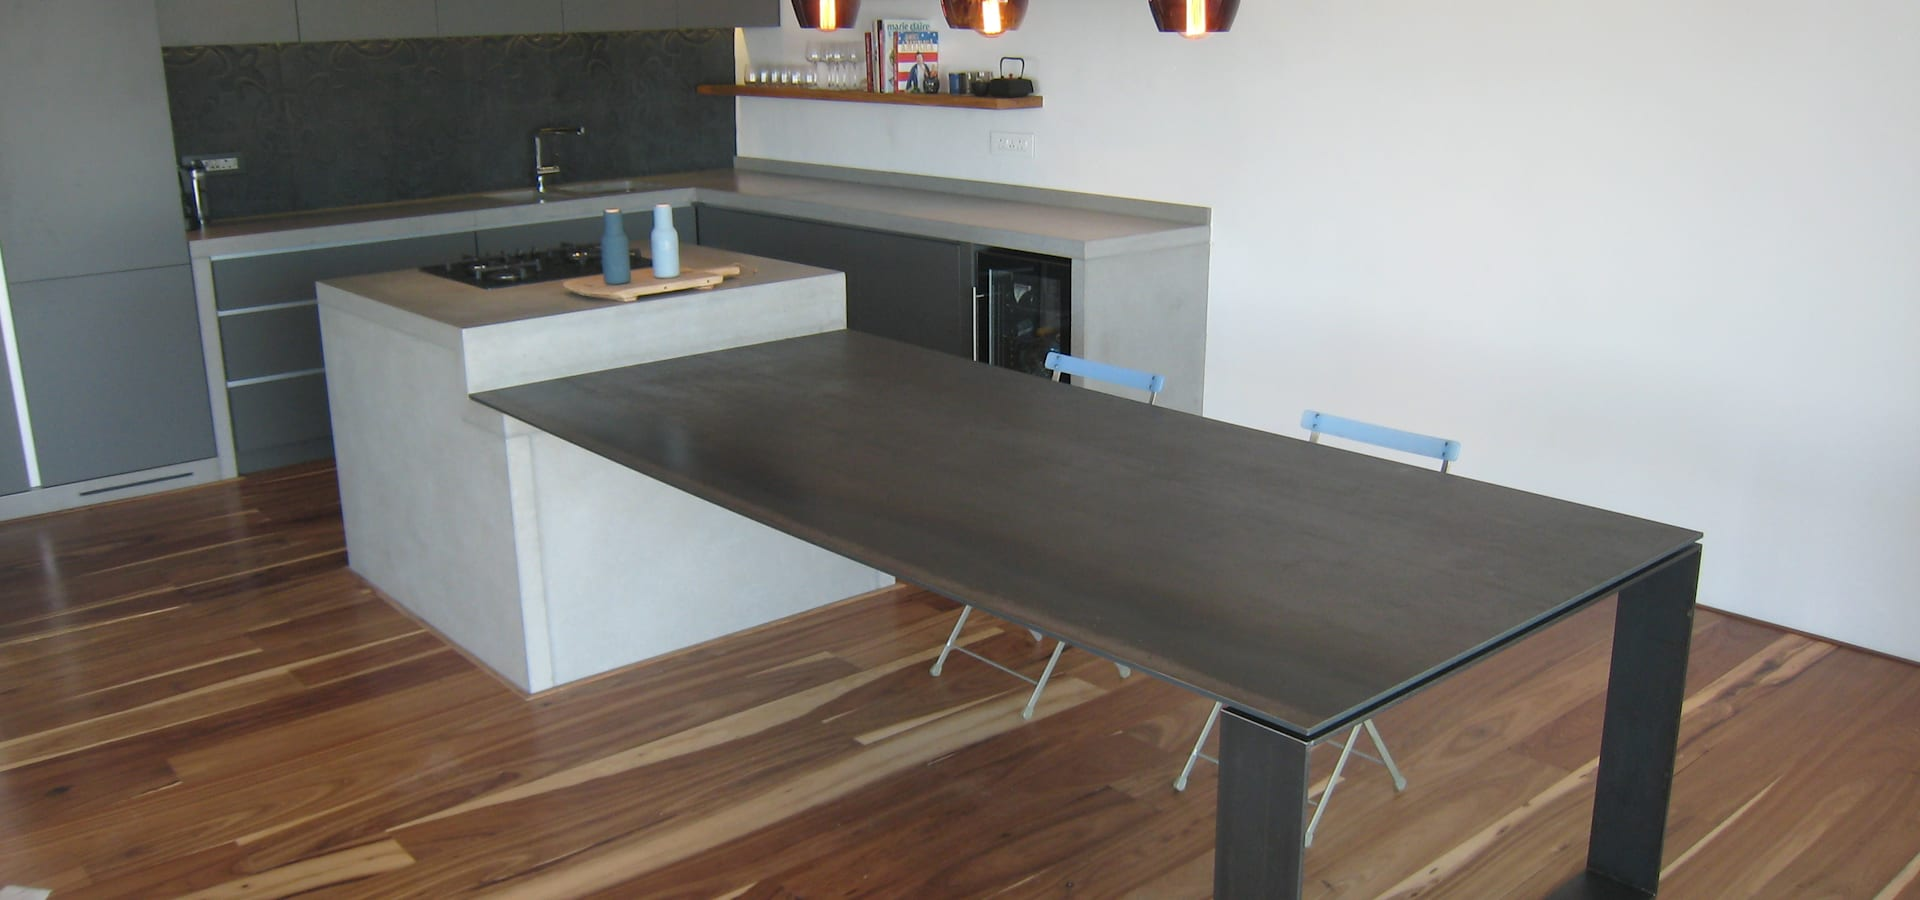 Stoneform concrete studios tile stone worktops in cape for Kitchen worktops cape town